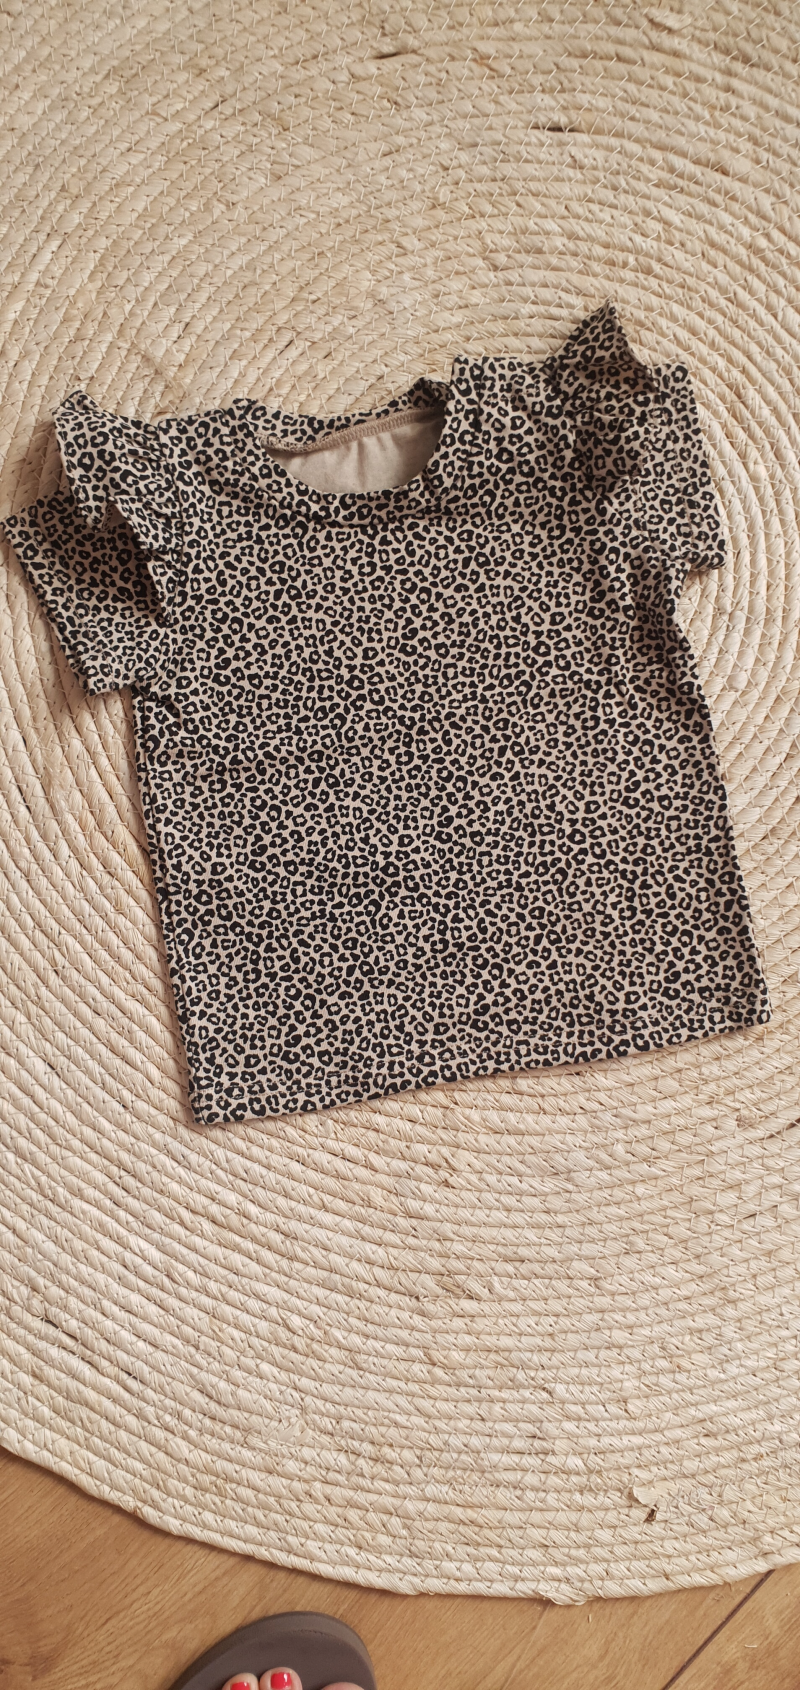 Ruffle shirt | Cheetah